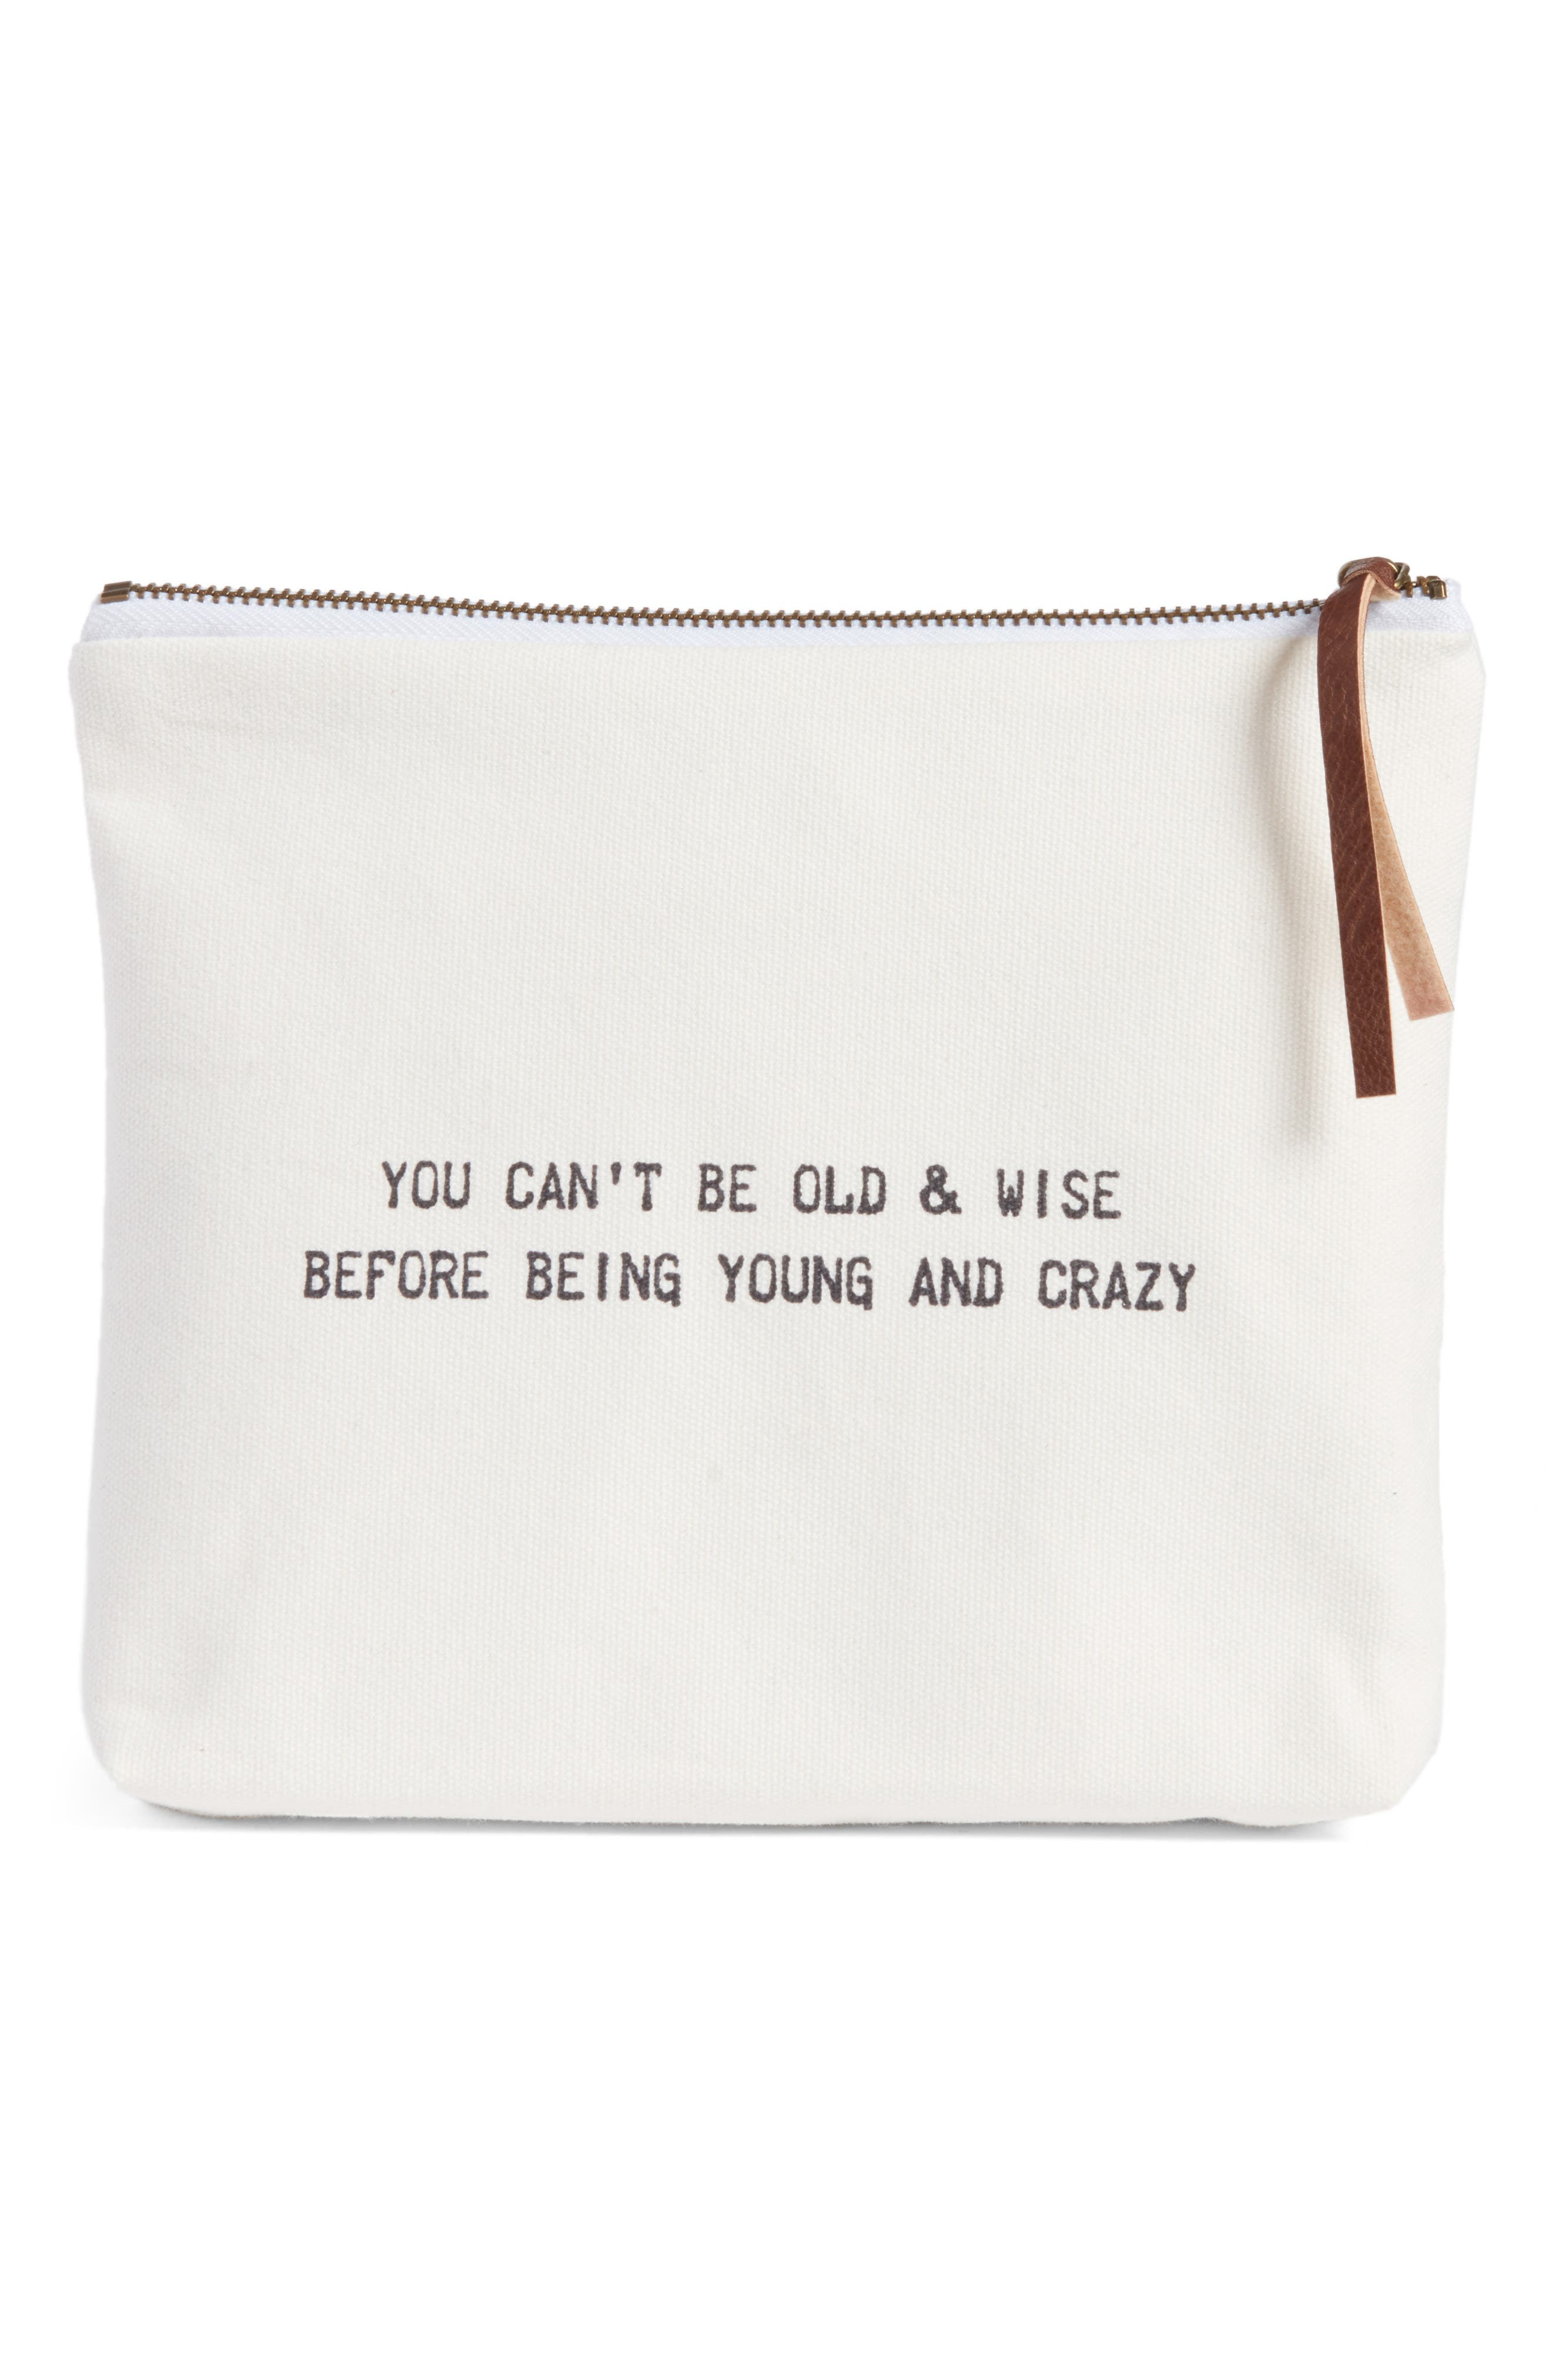 Main Image - Levtex Old & Wise Before Young & Crazy Zip Top Accessory Bag